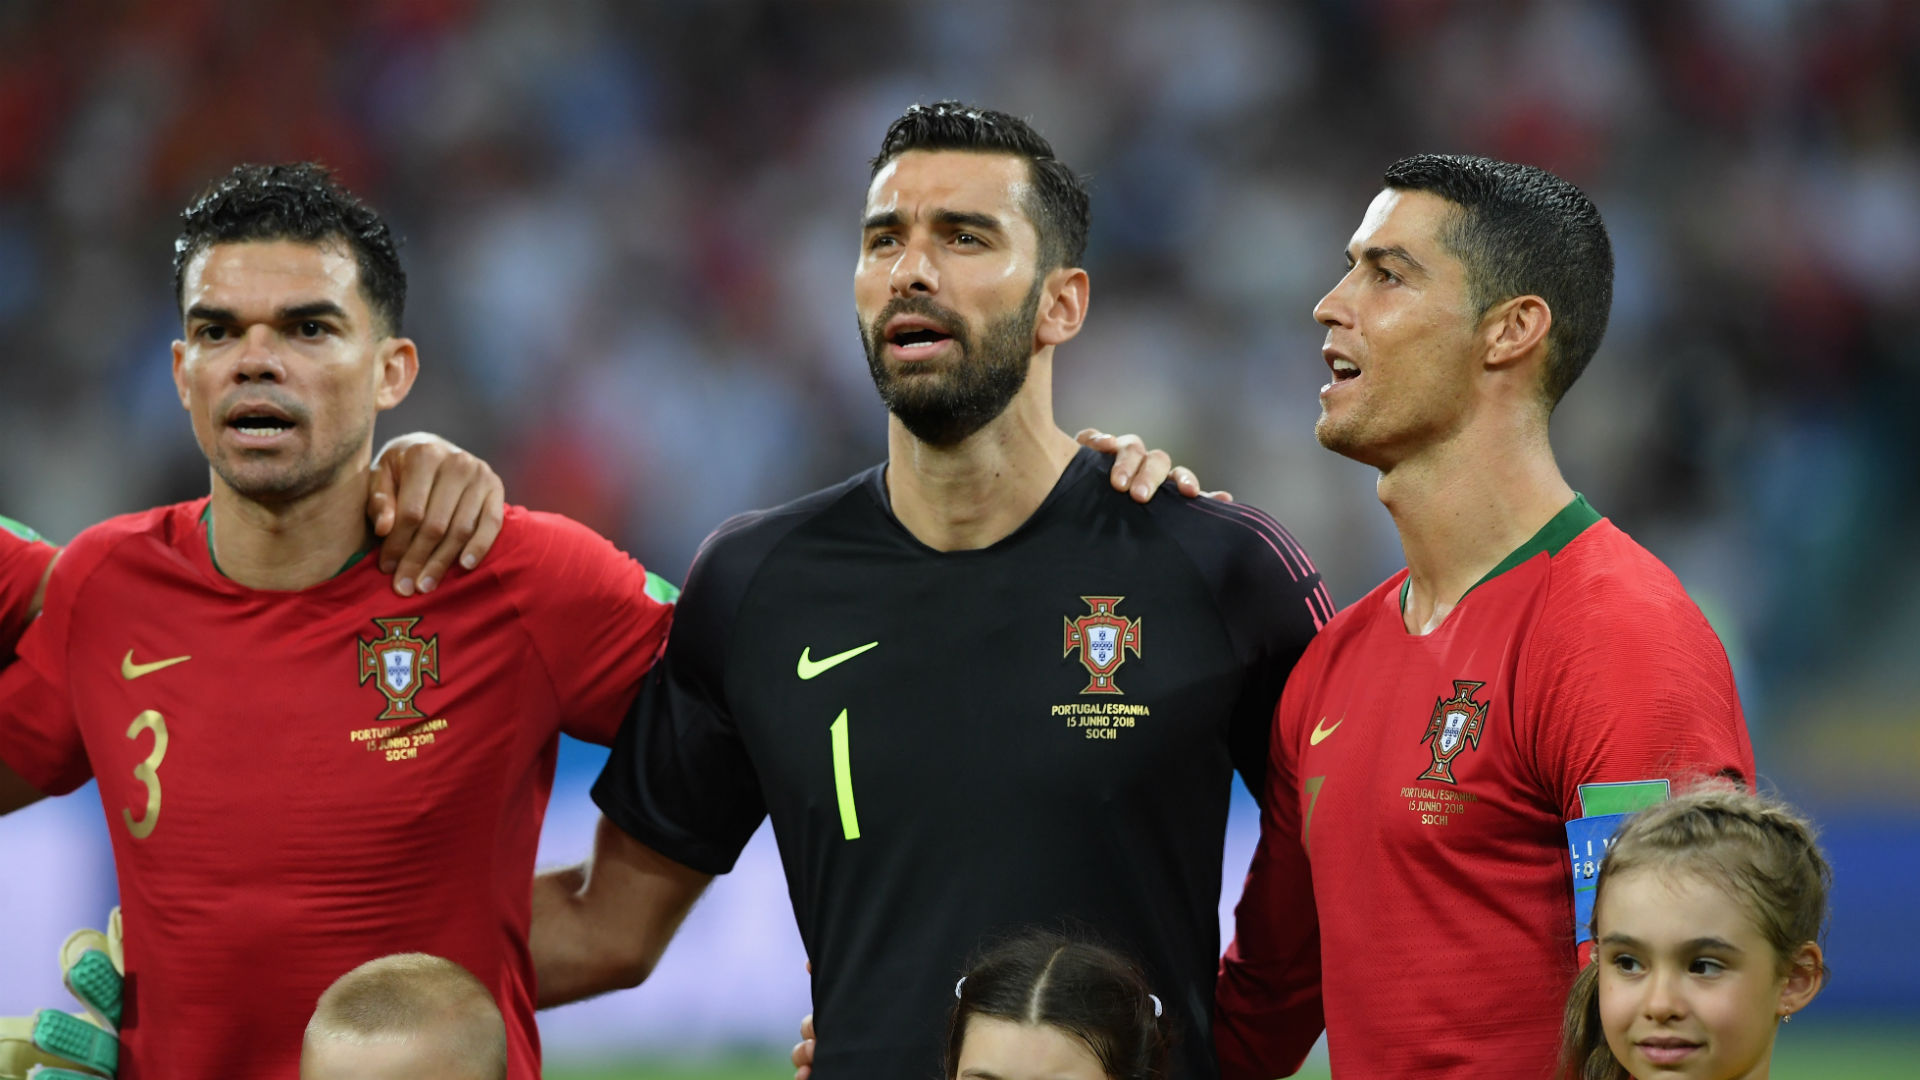 Portugal Wins On Cristiano Ronaldo's Record Goal